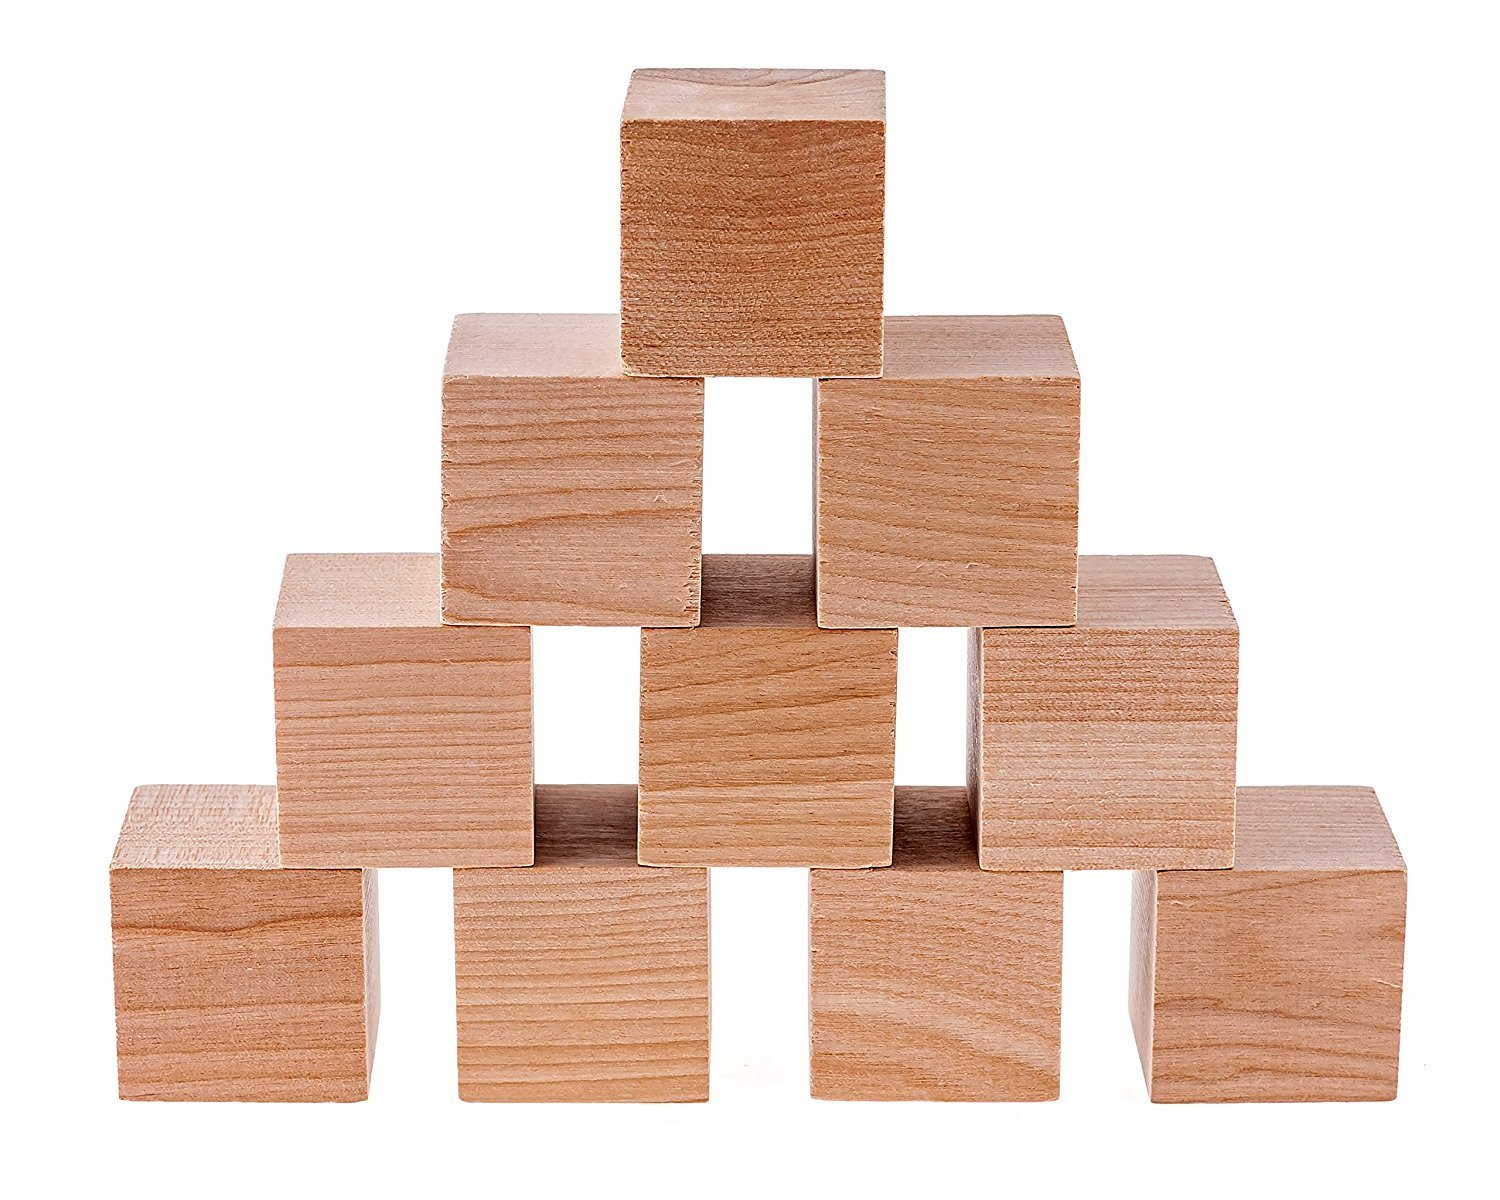 32 Pack Unfinished Wooden Blocks for Crafts and Carving Plain Blank Natural Wood Blocks Wood Blocks 1.5 Inches Made in USA